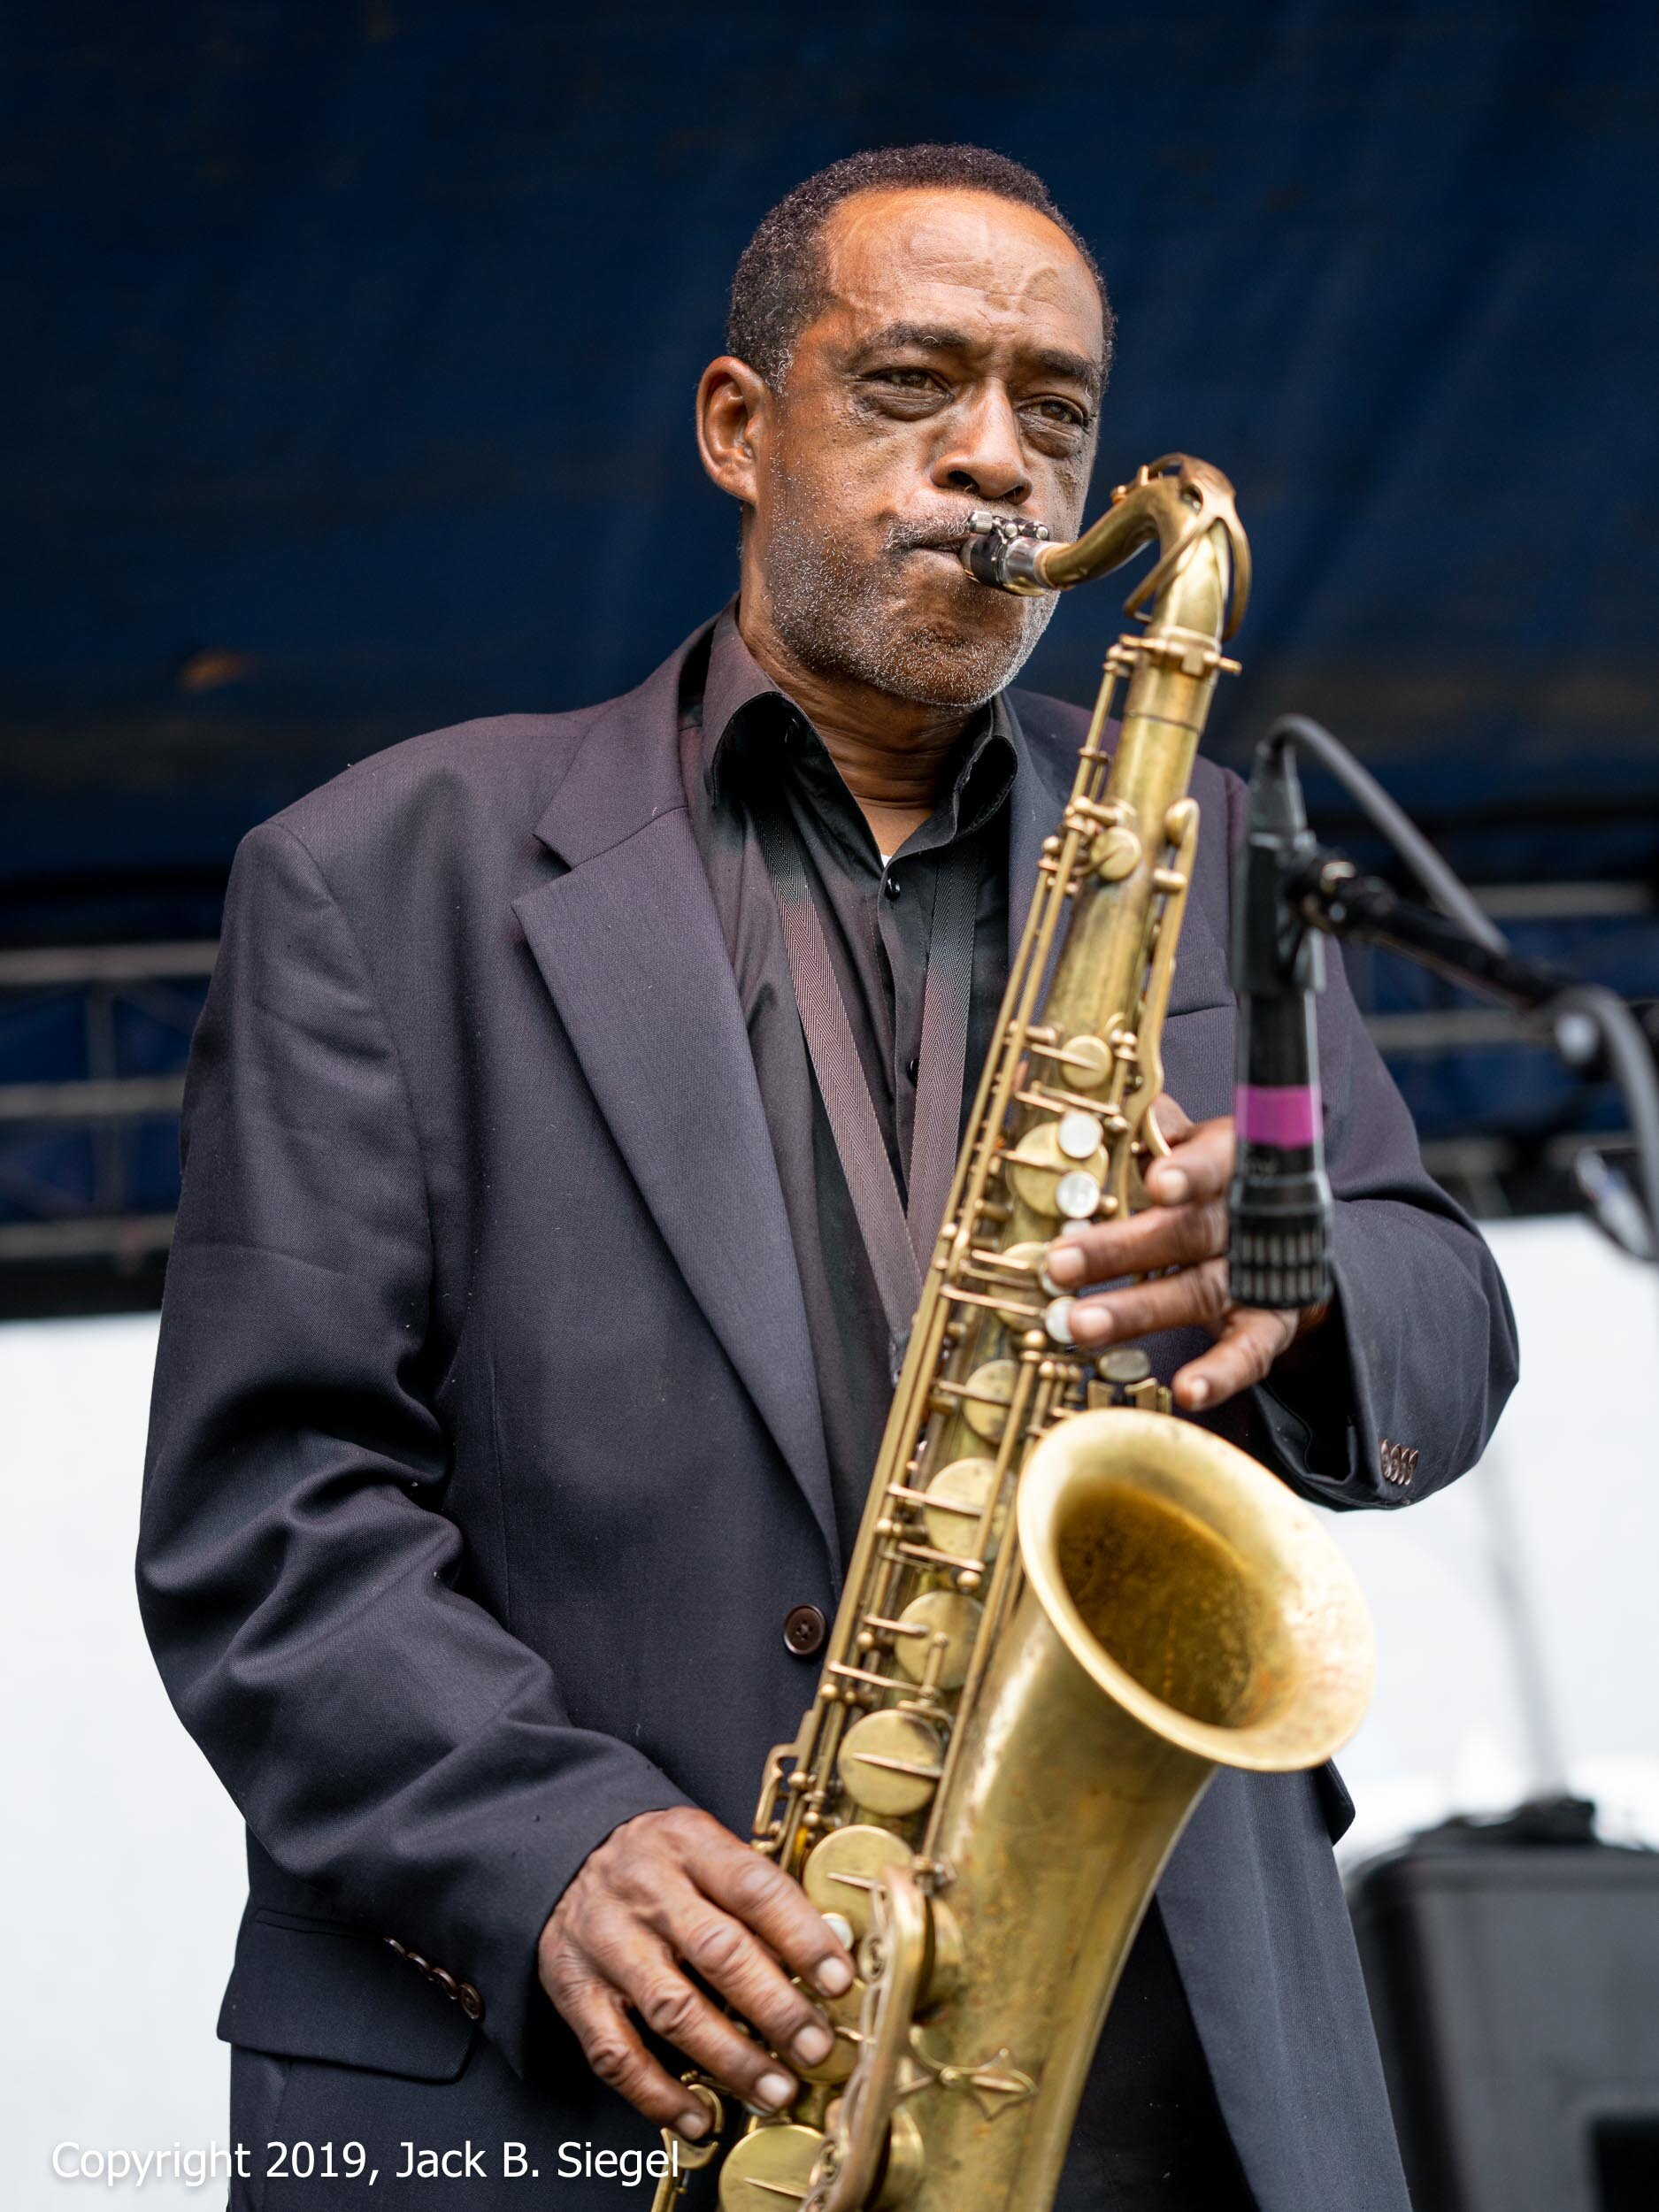 Hank Ford of the Chicago Horns